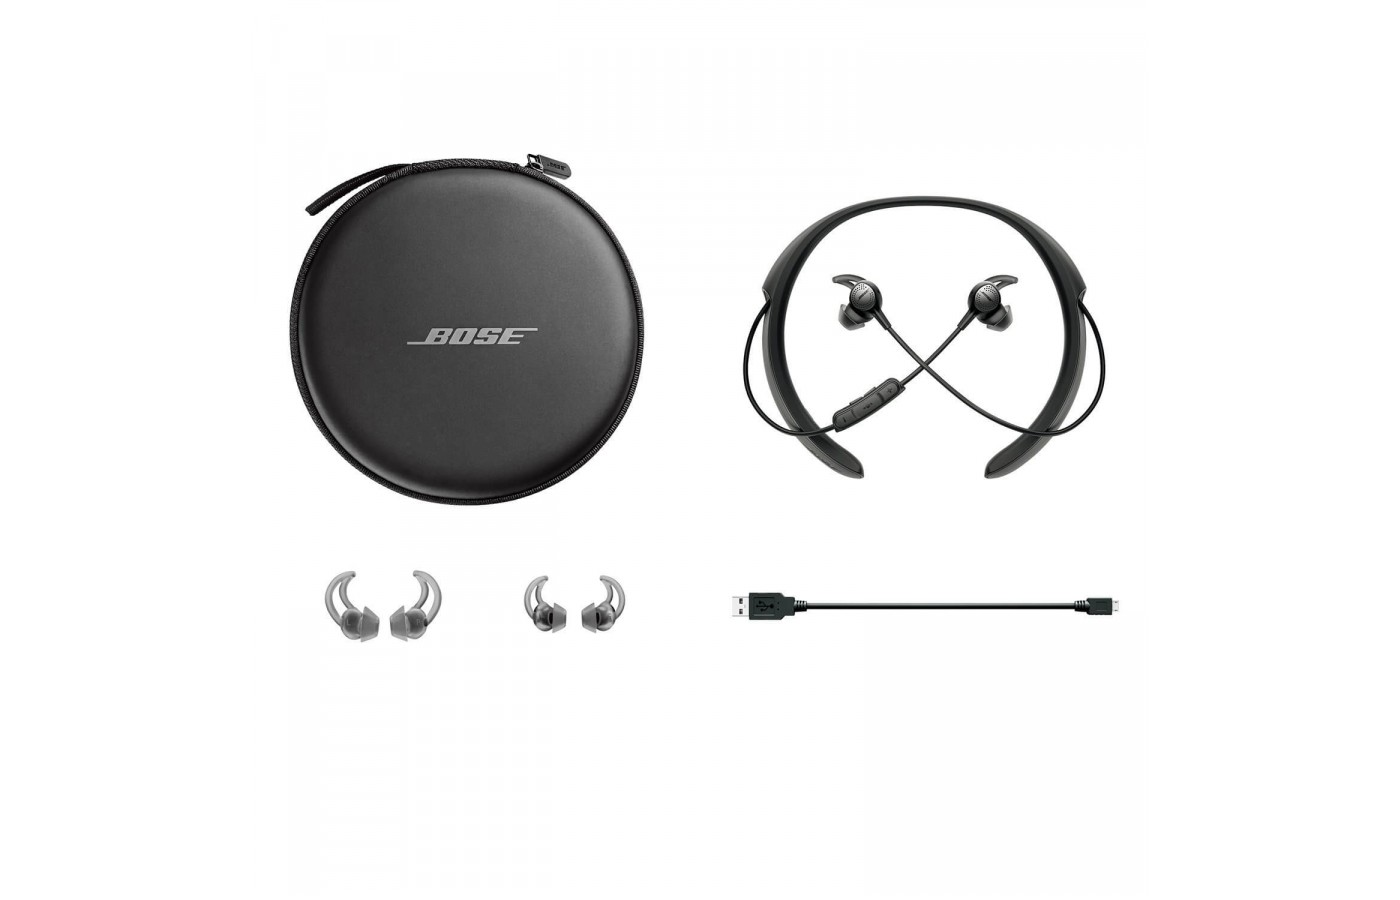 The full package for the Bose Quiet Comfort 30.